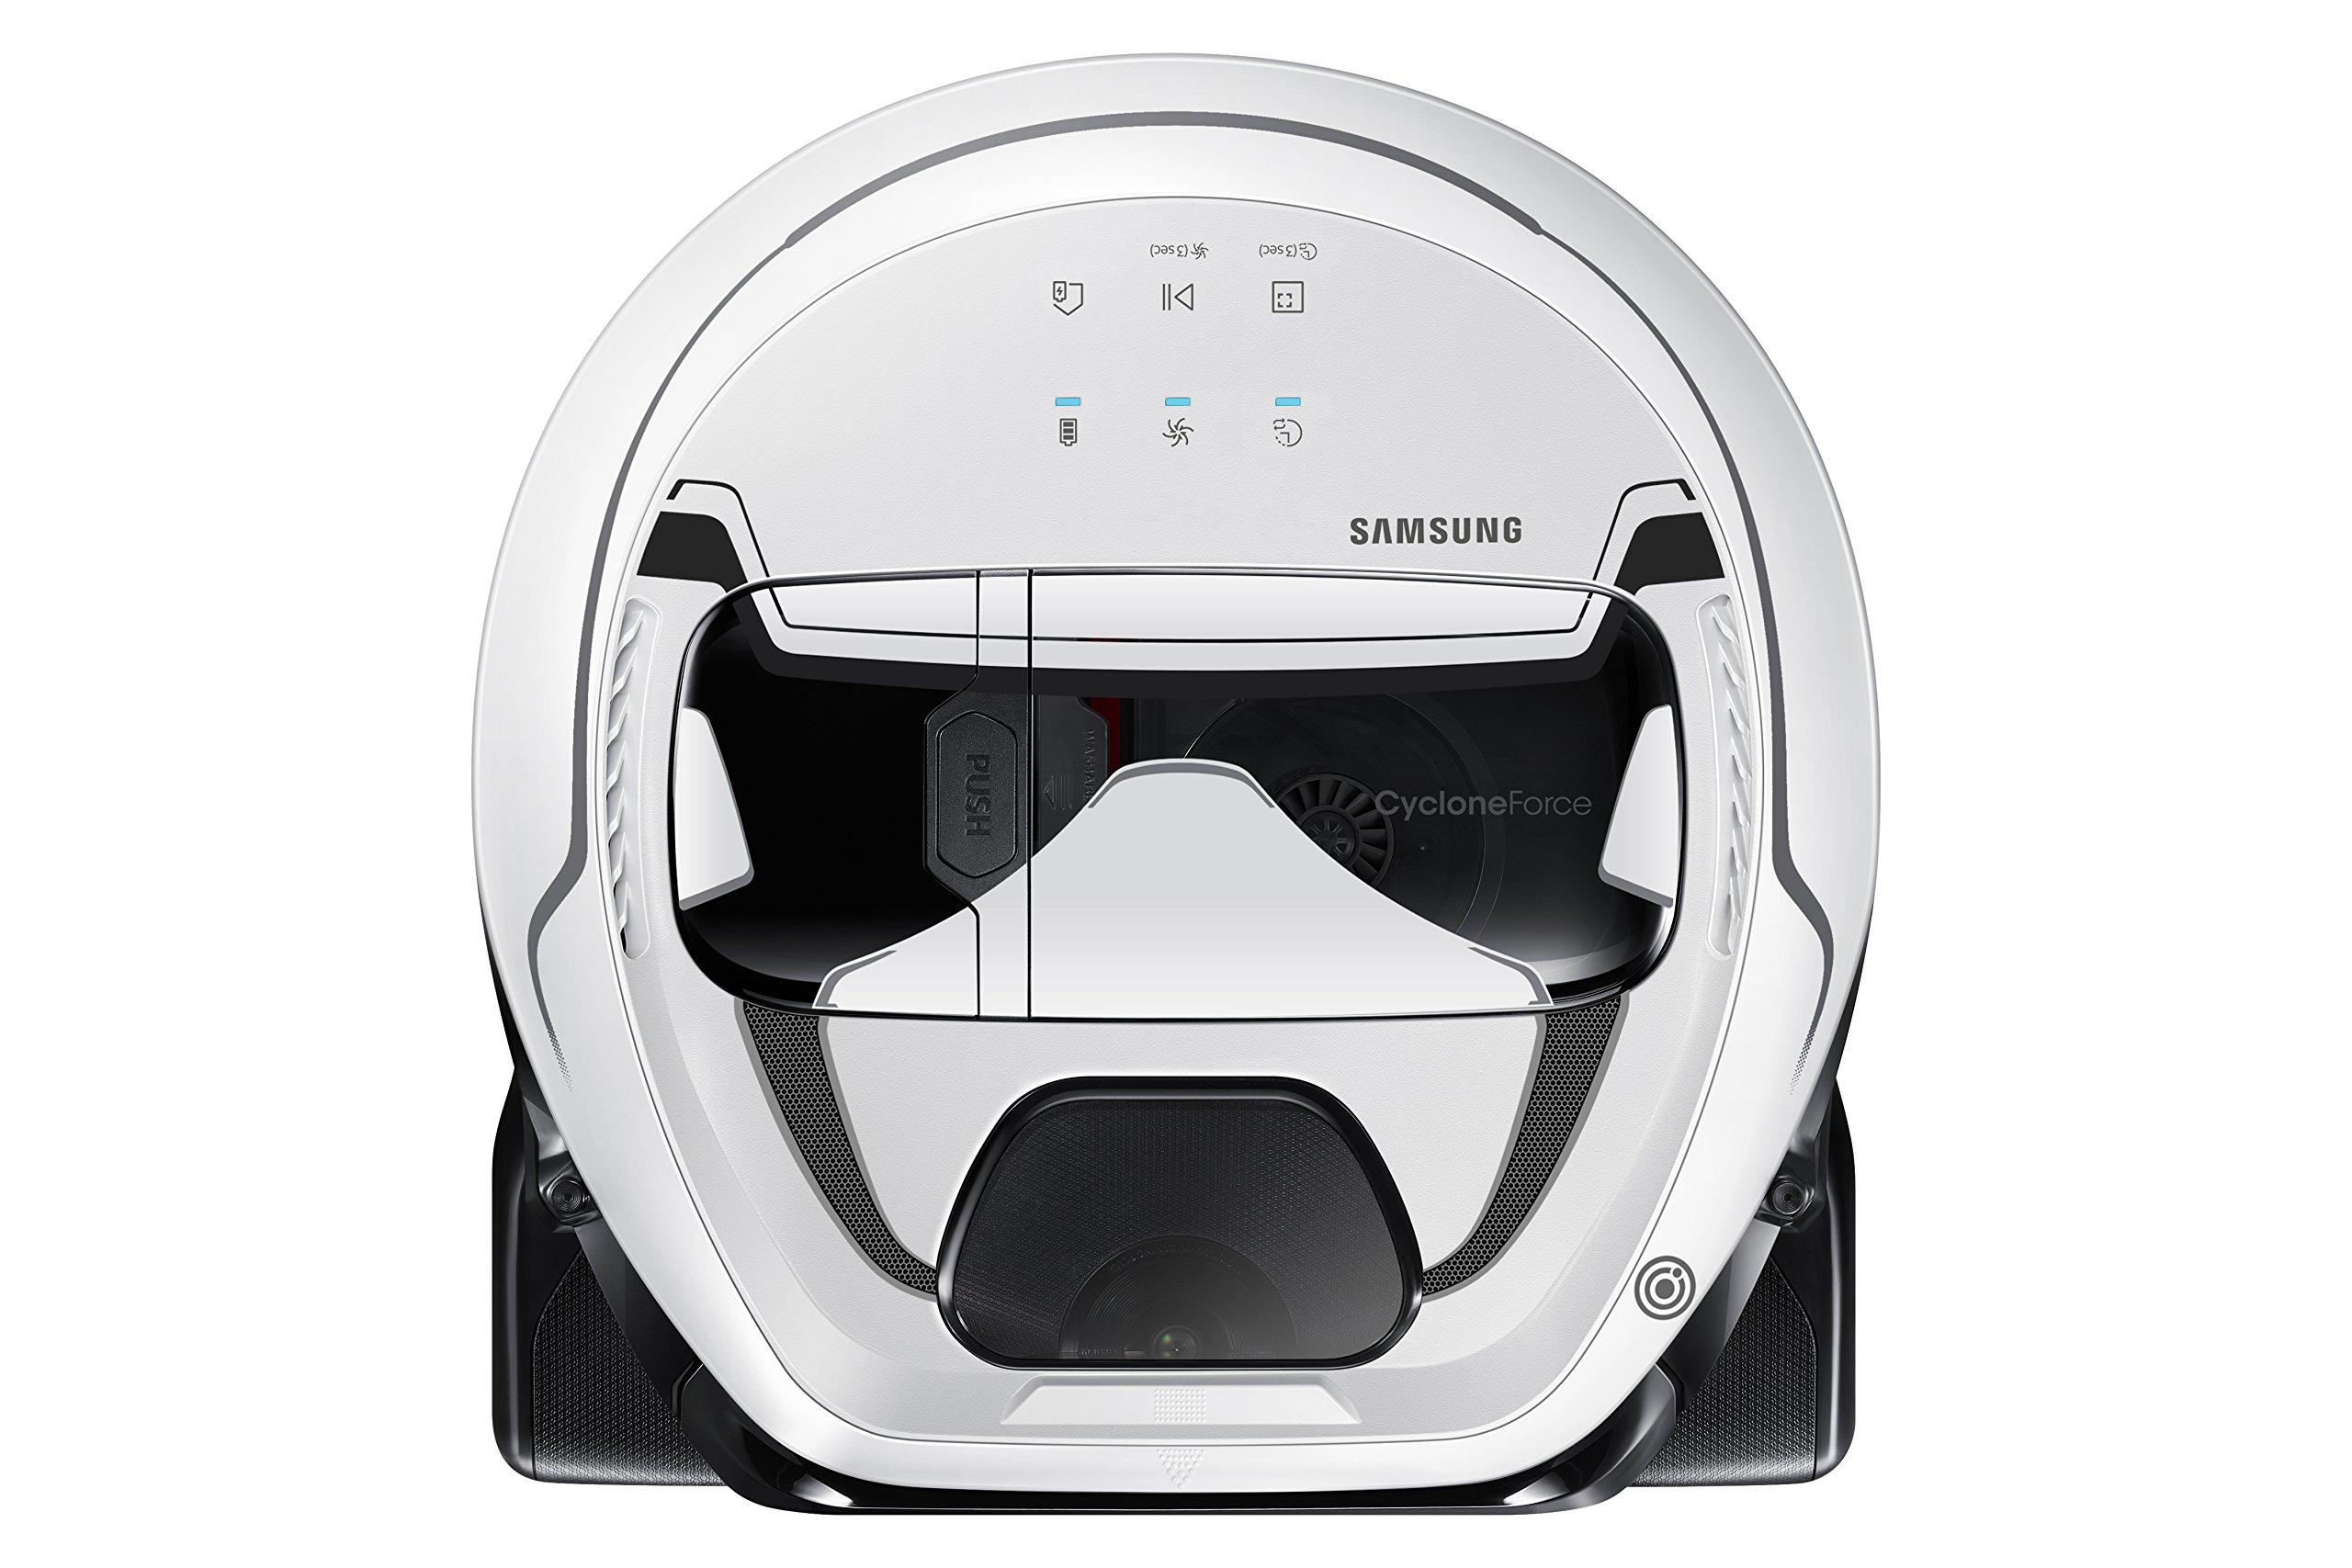 Samsung POWERbot Star Wars Limited Edition – Stormtrooper by Samsung